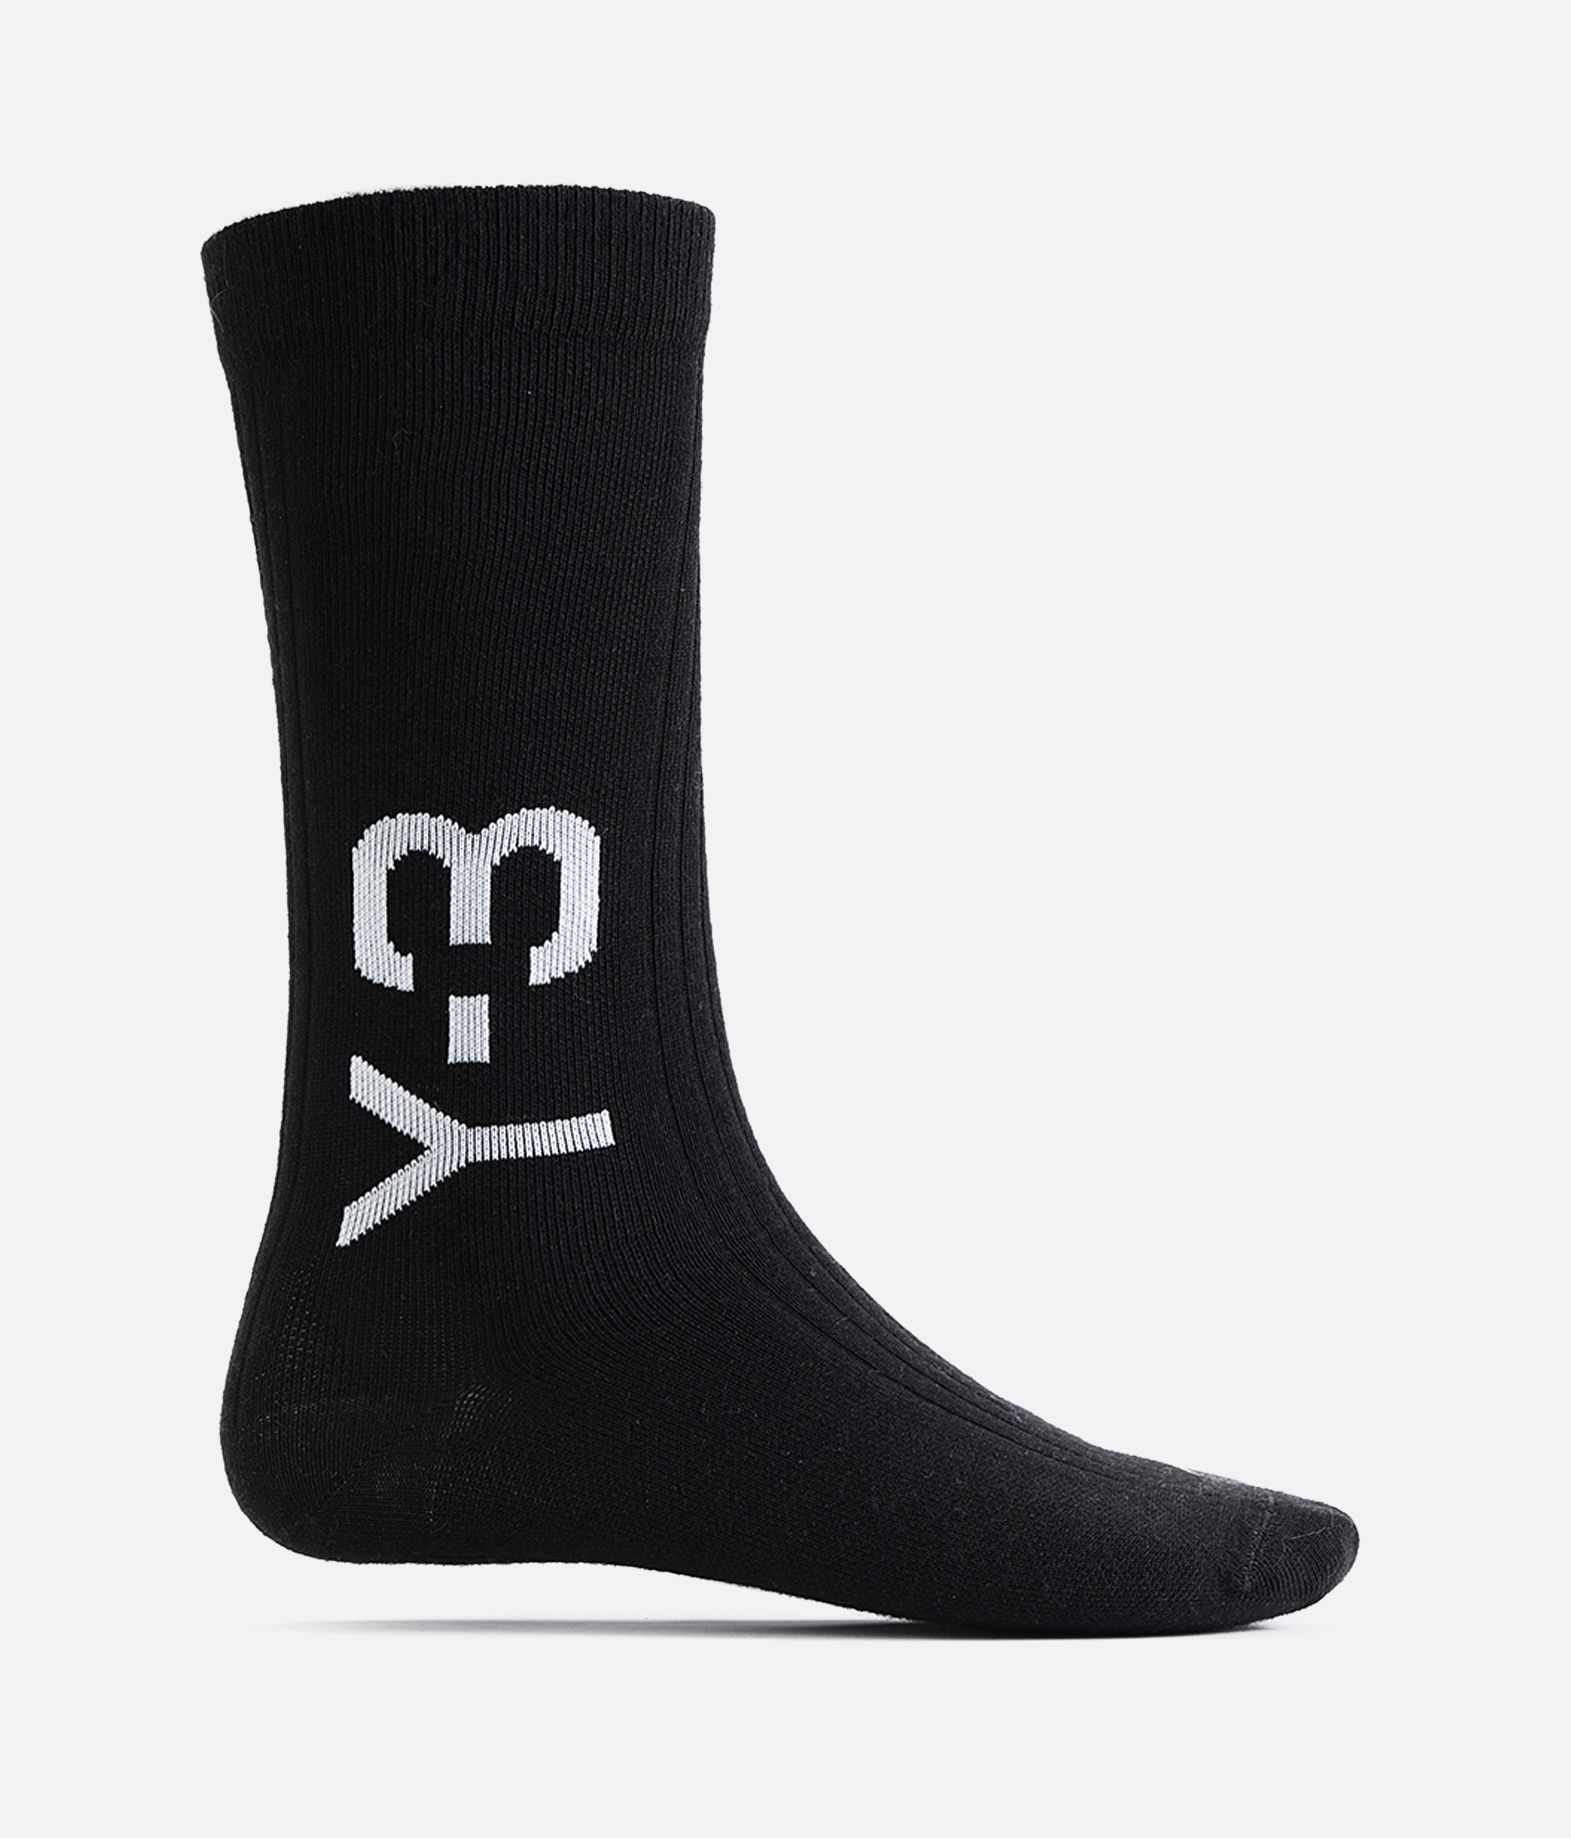 Y-3 Y-3 Wool-Nylon Socks Calzini E f